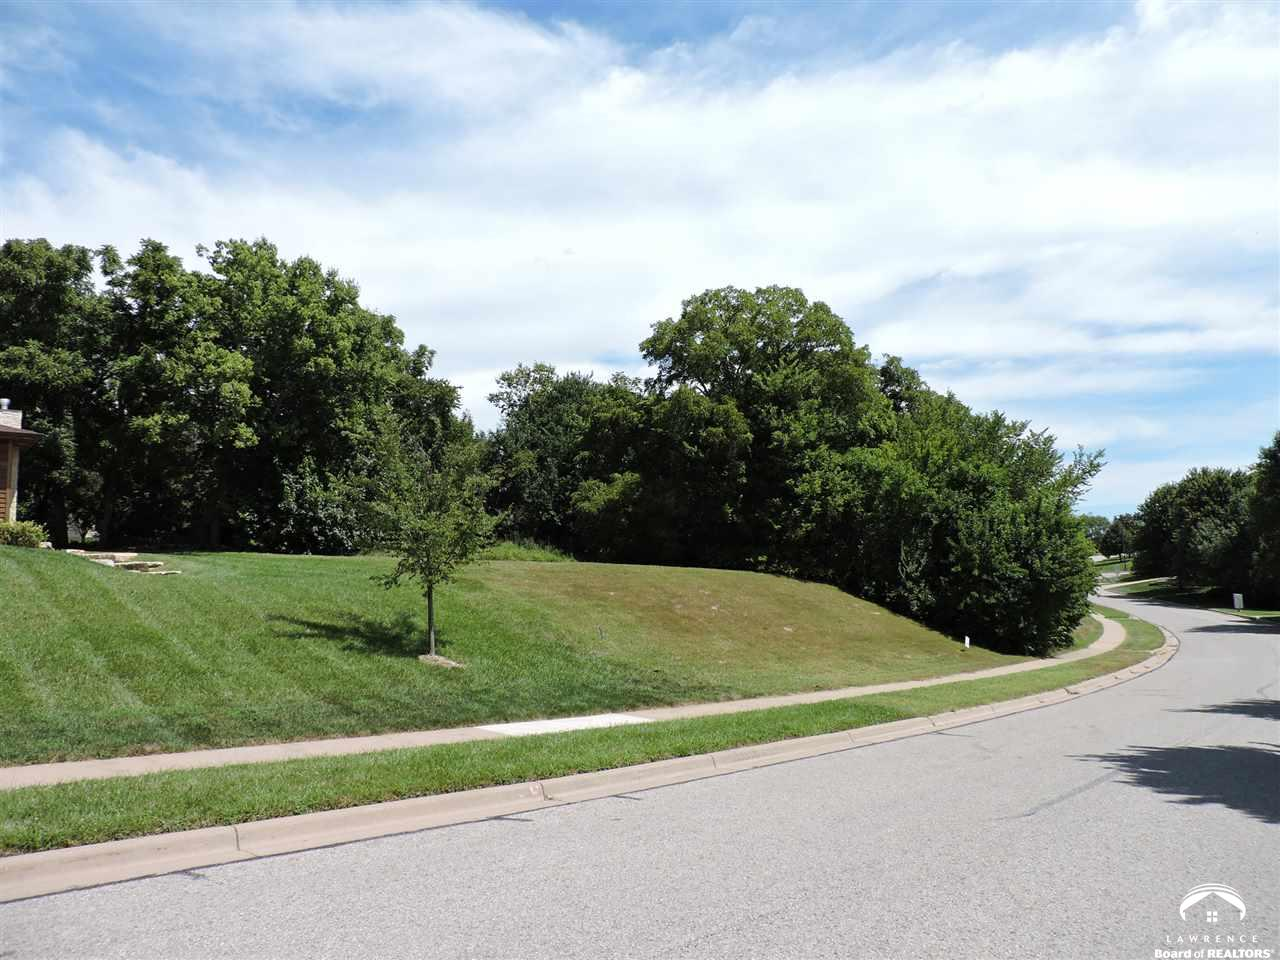 5000 Blk 18th, Lawrence, Kansas 66047, ,Land,For Sale,18th,153262